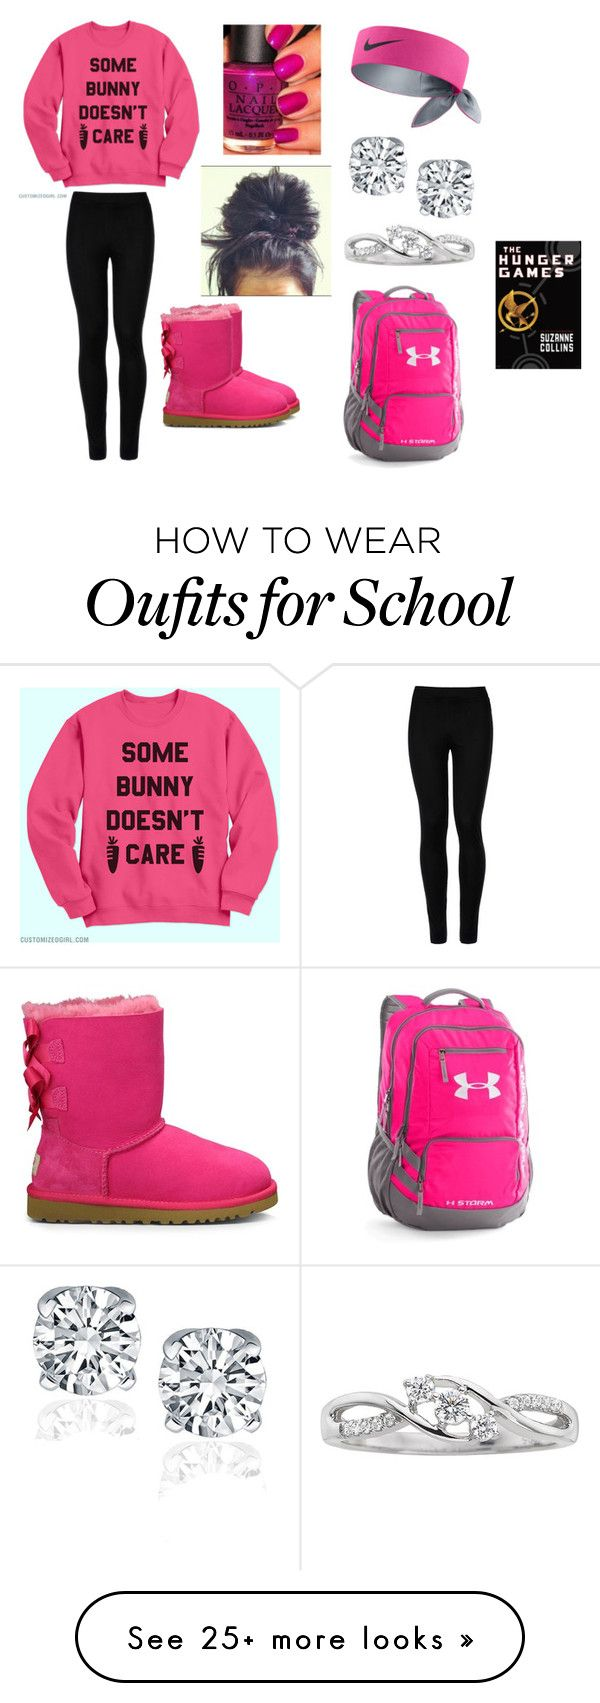 """School"" by tealzebra36 on Polyvore featuring Wolford, UGG Australia, OPI, NIKE and Under Armour"